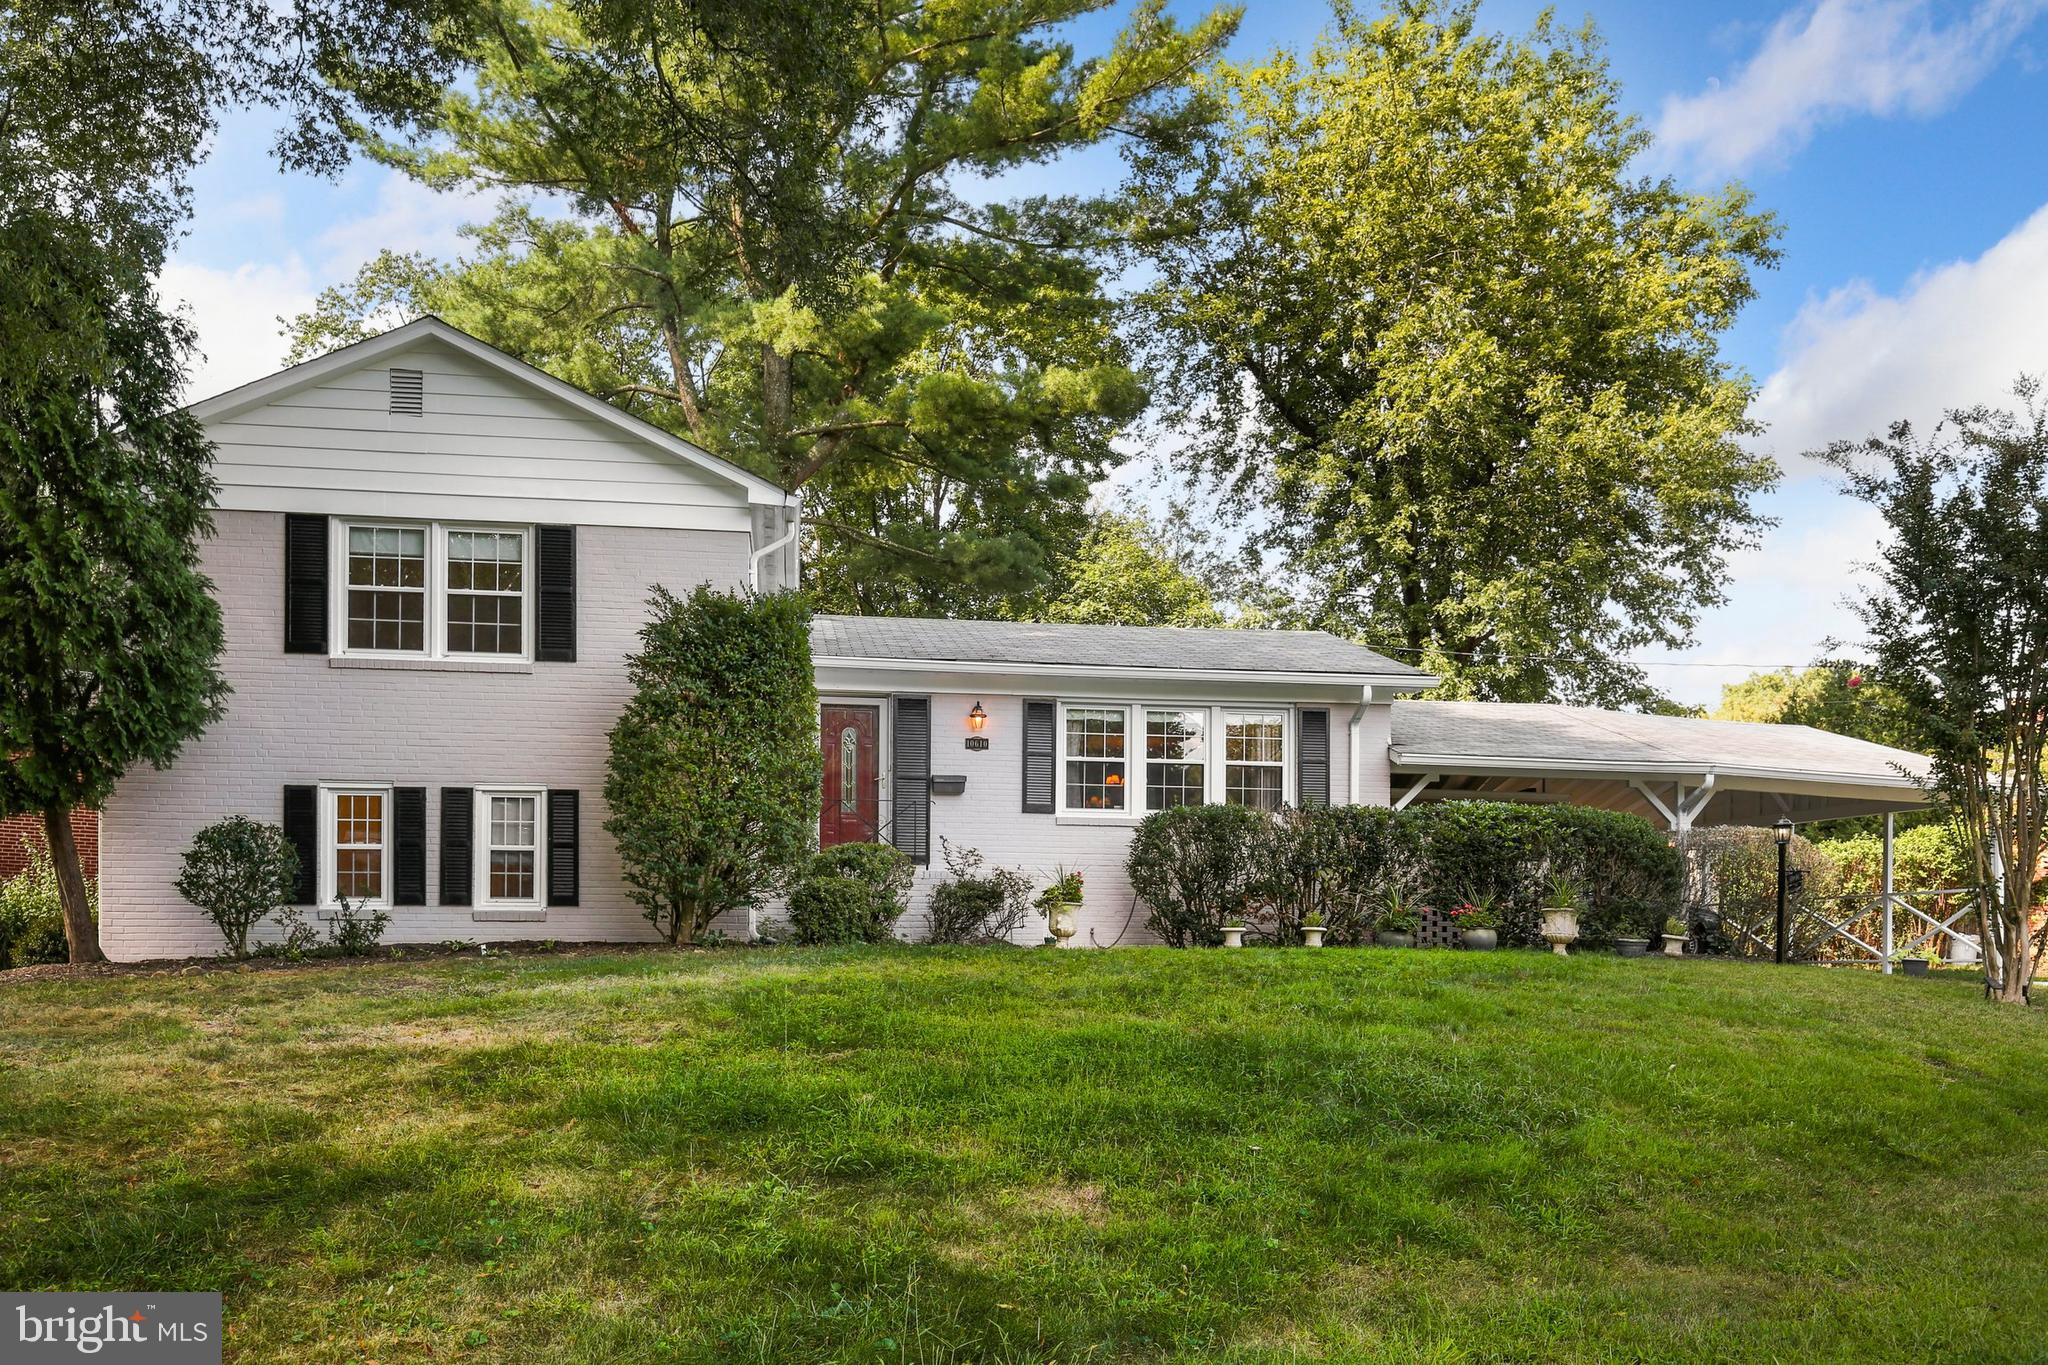 10610 MEADOWHILL ROAD, SILVER SPRING, MD 20901